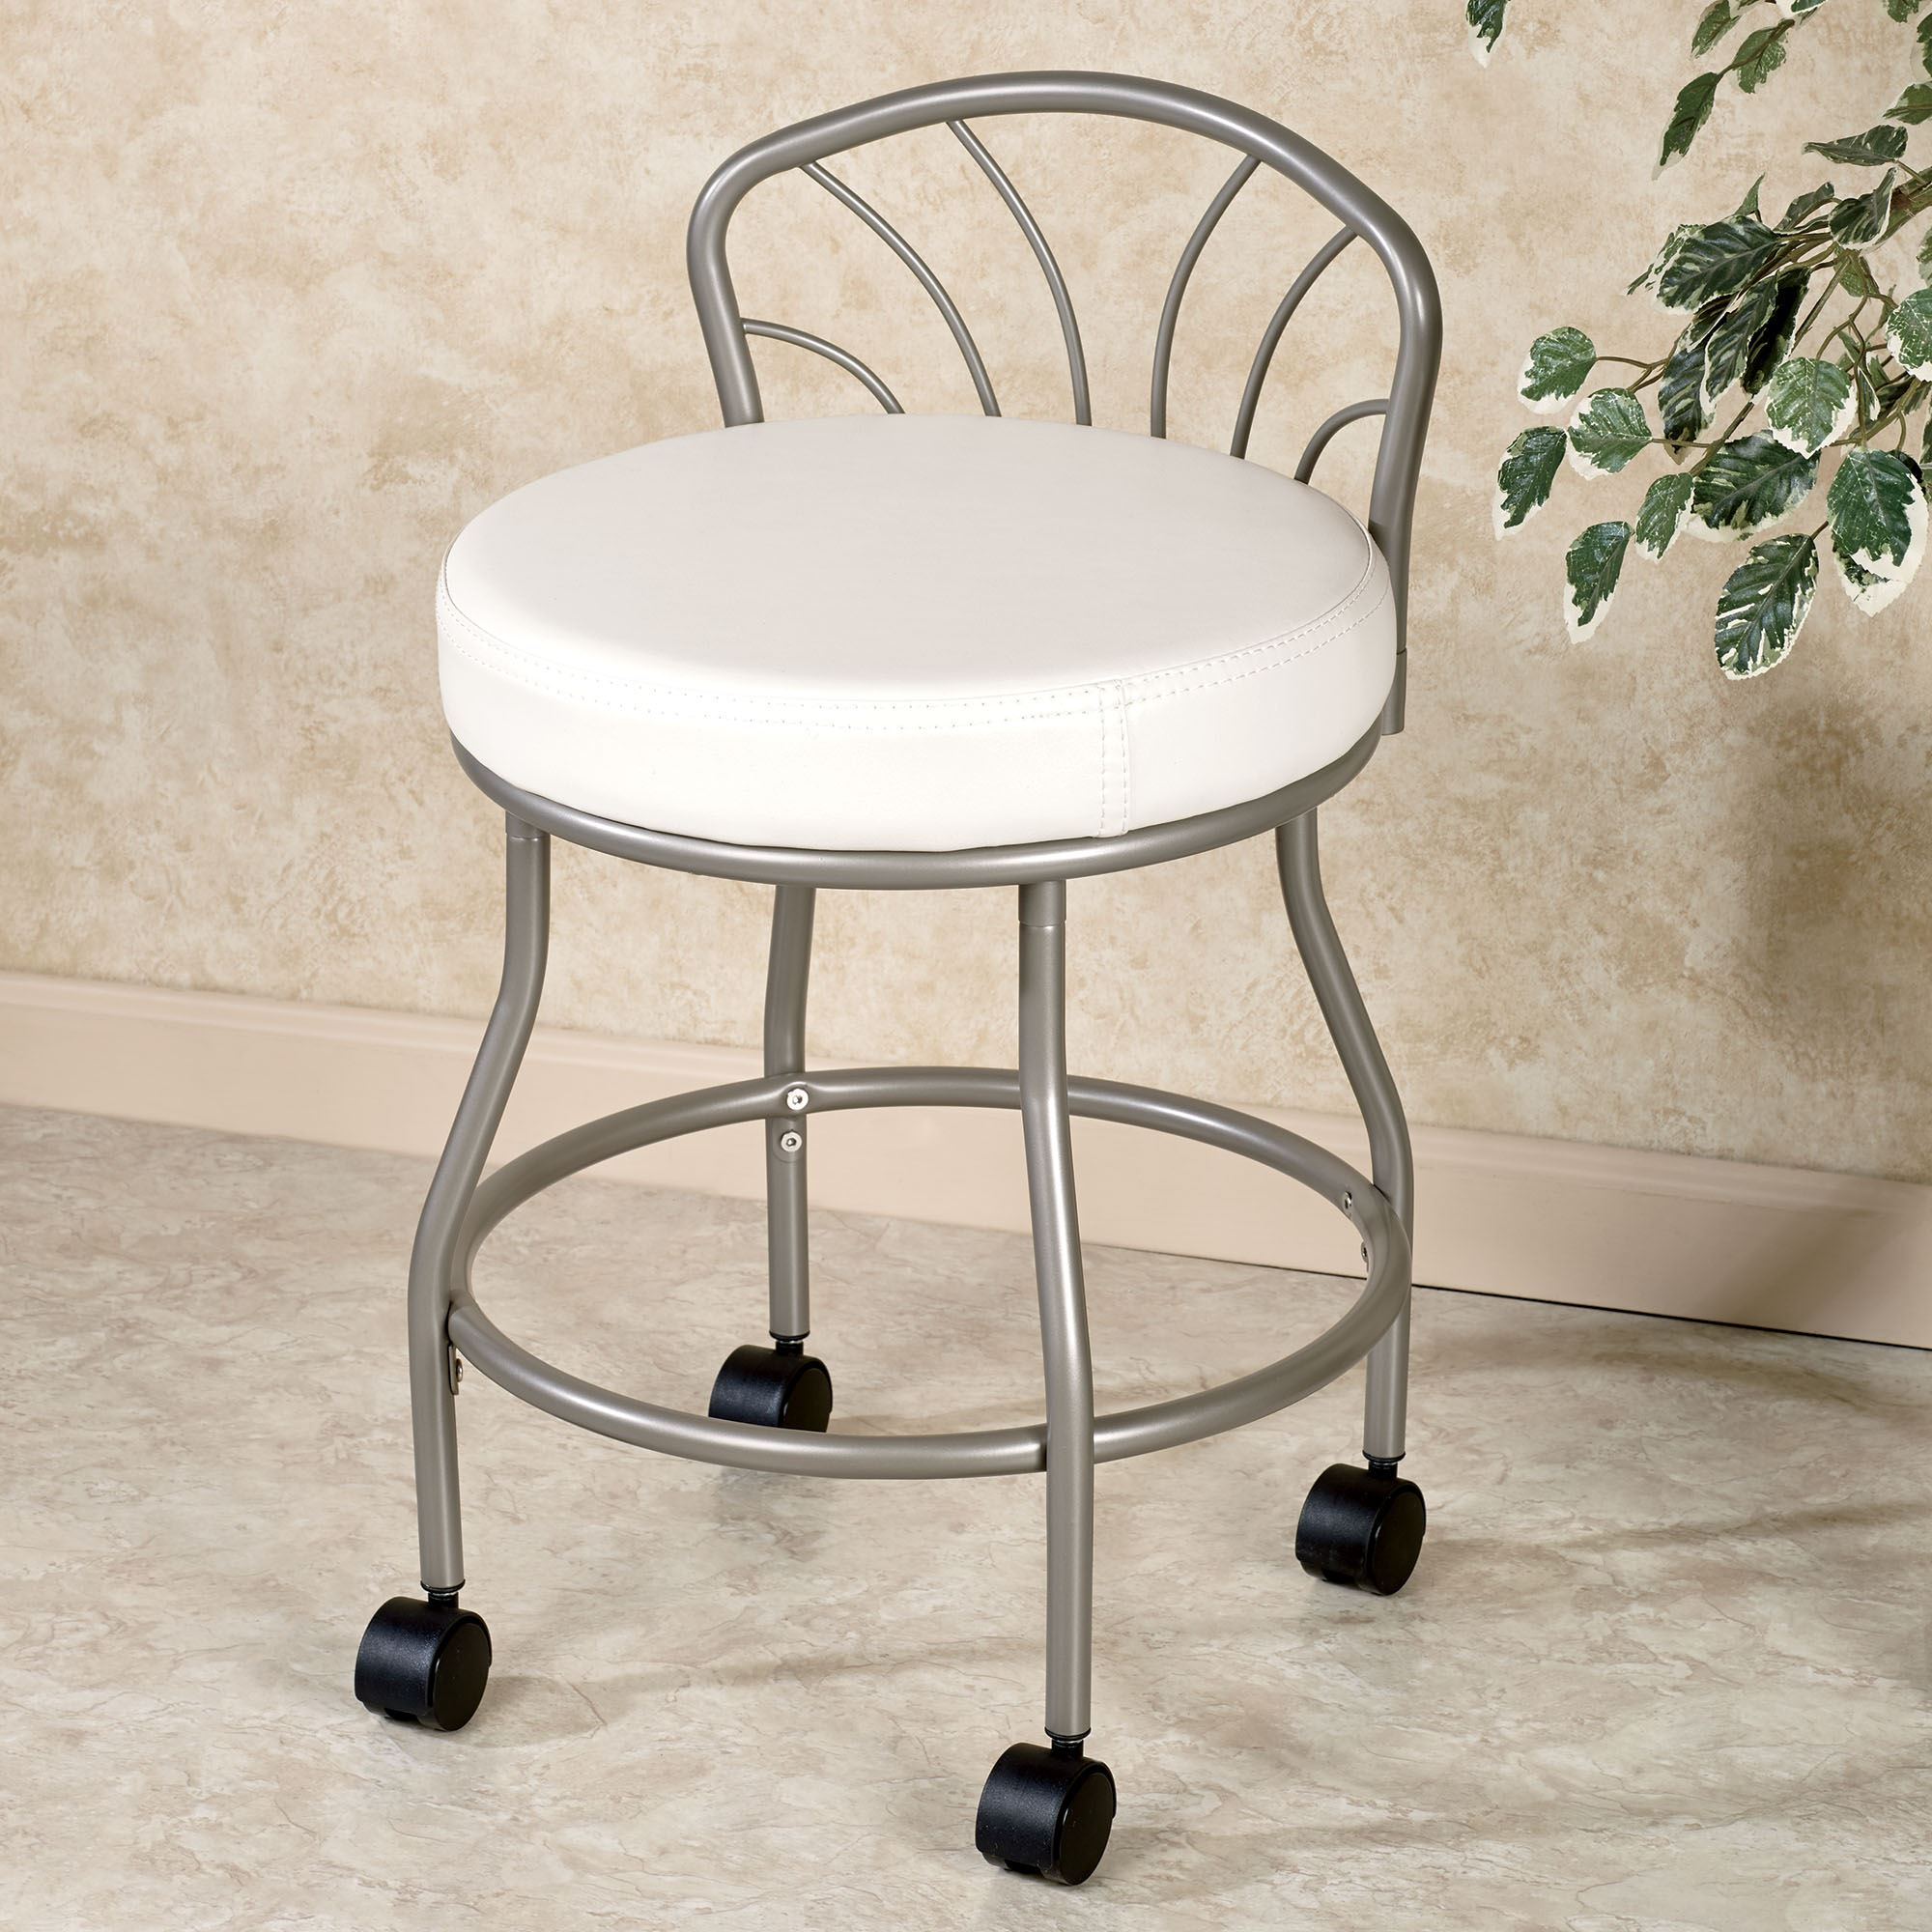 Comfortable Vanity Chair Flare Back Powder Coat Nickel Finish Vanity Chair With Casters